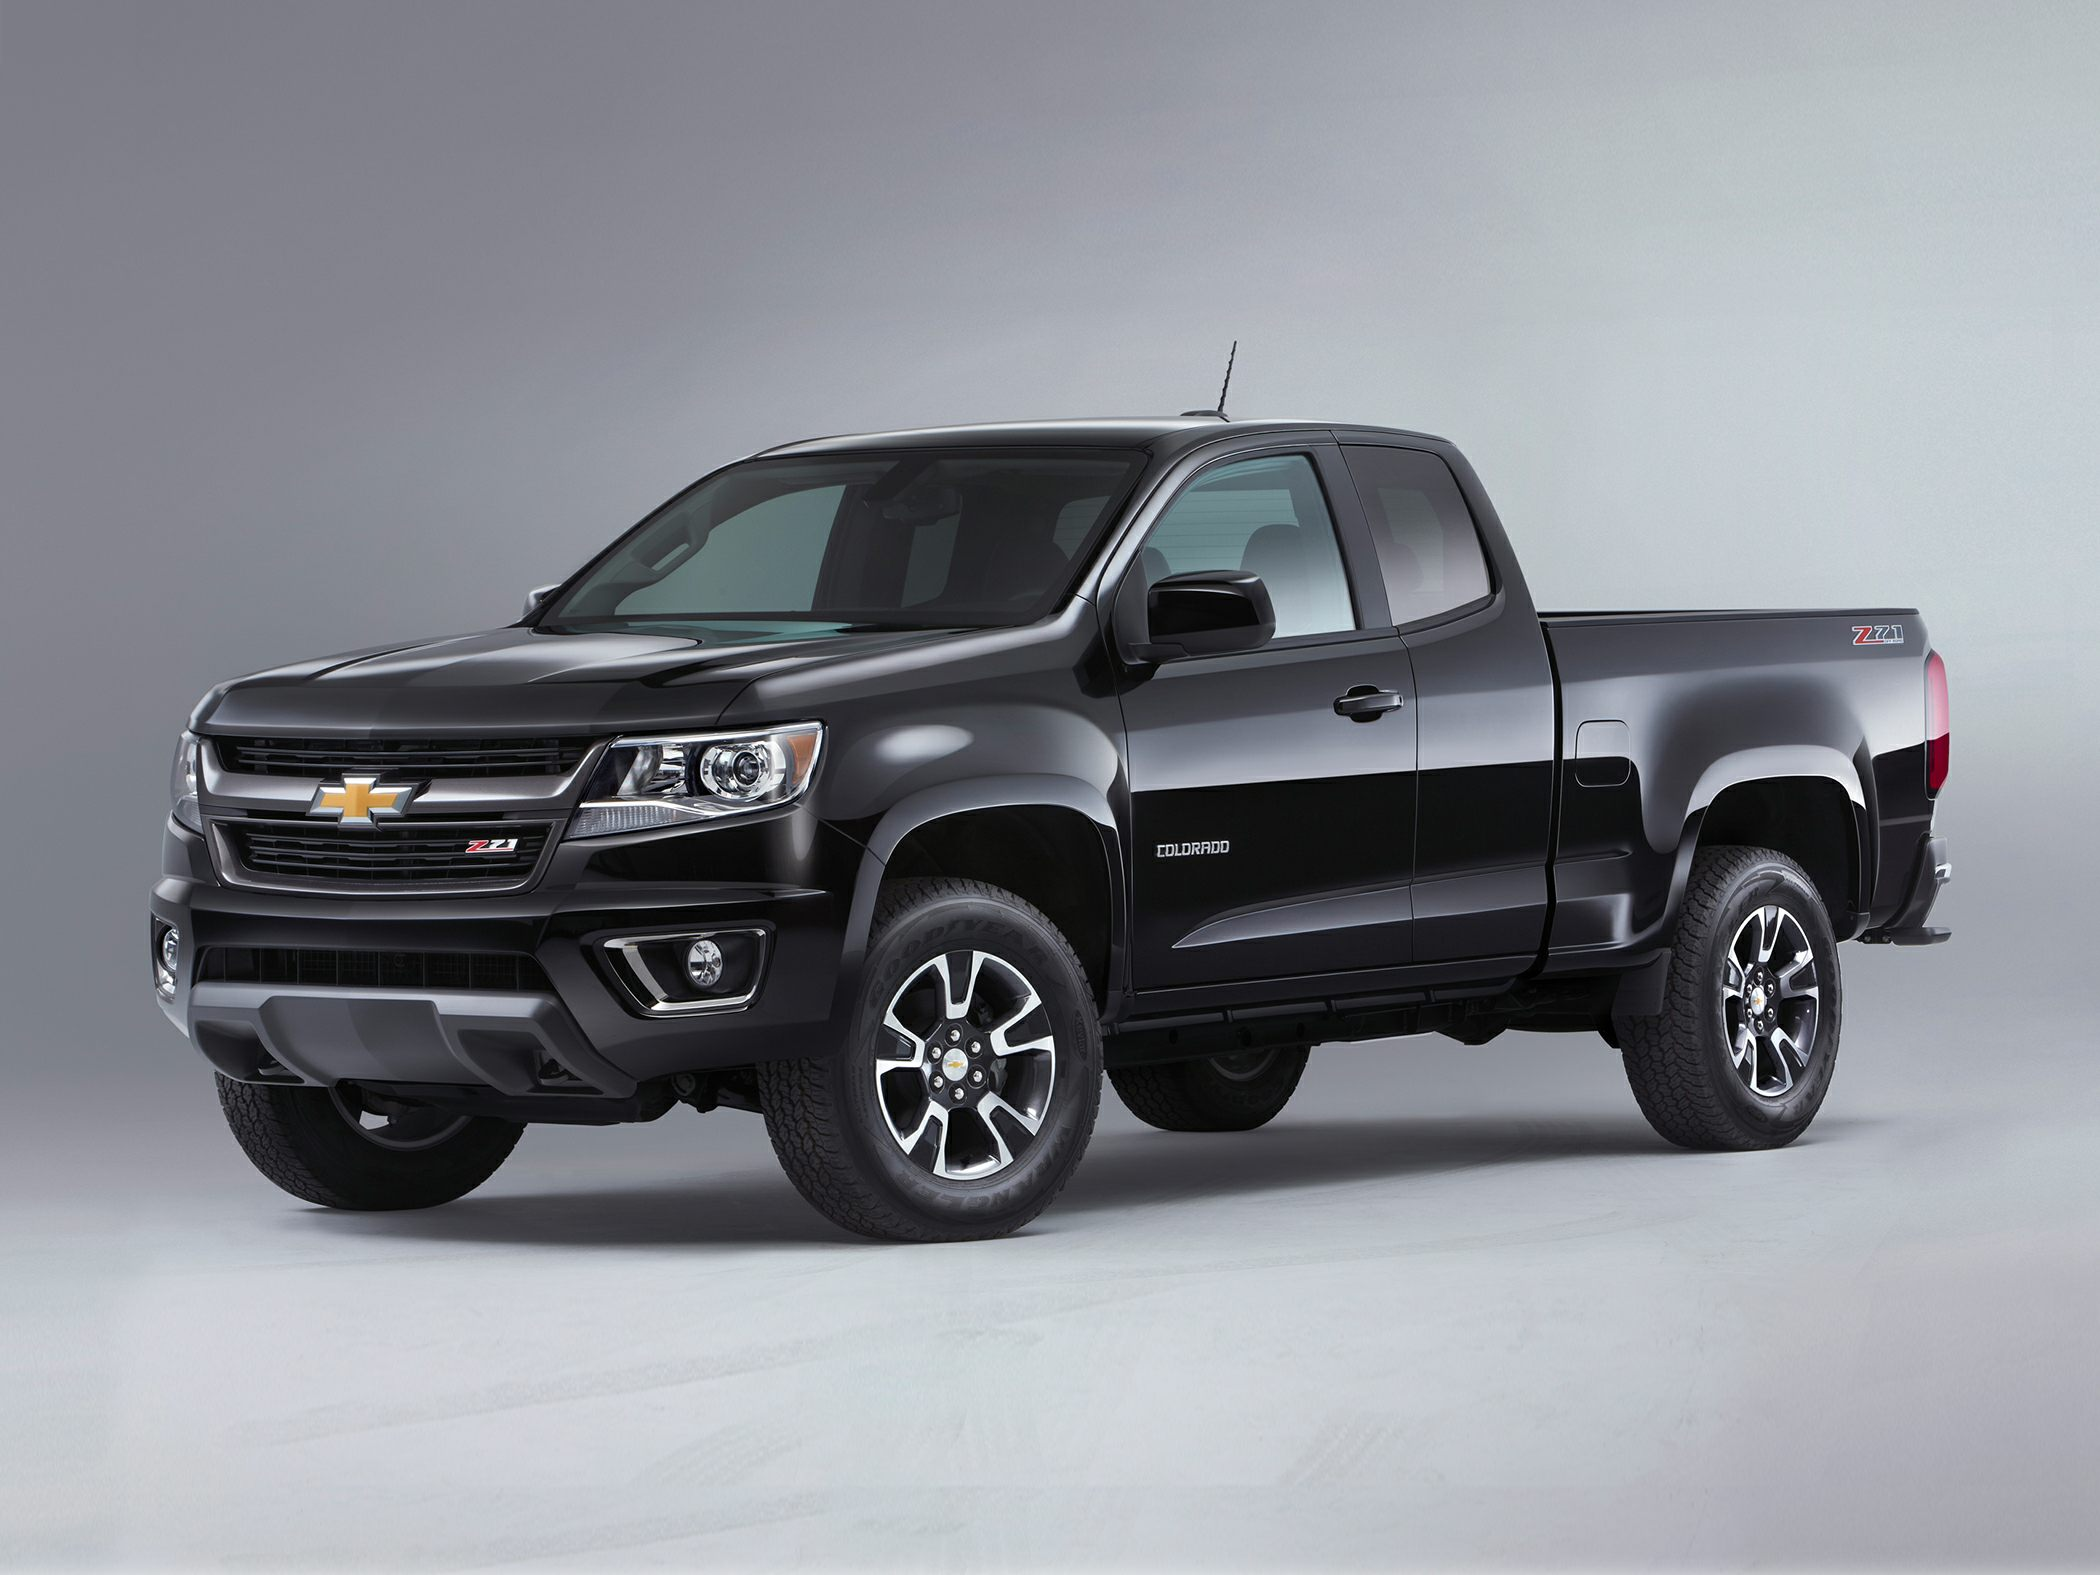 2018 Chevrolet Colorado price